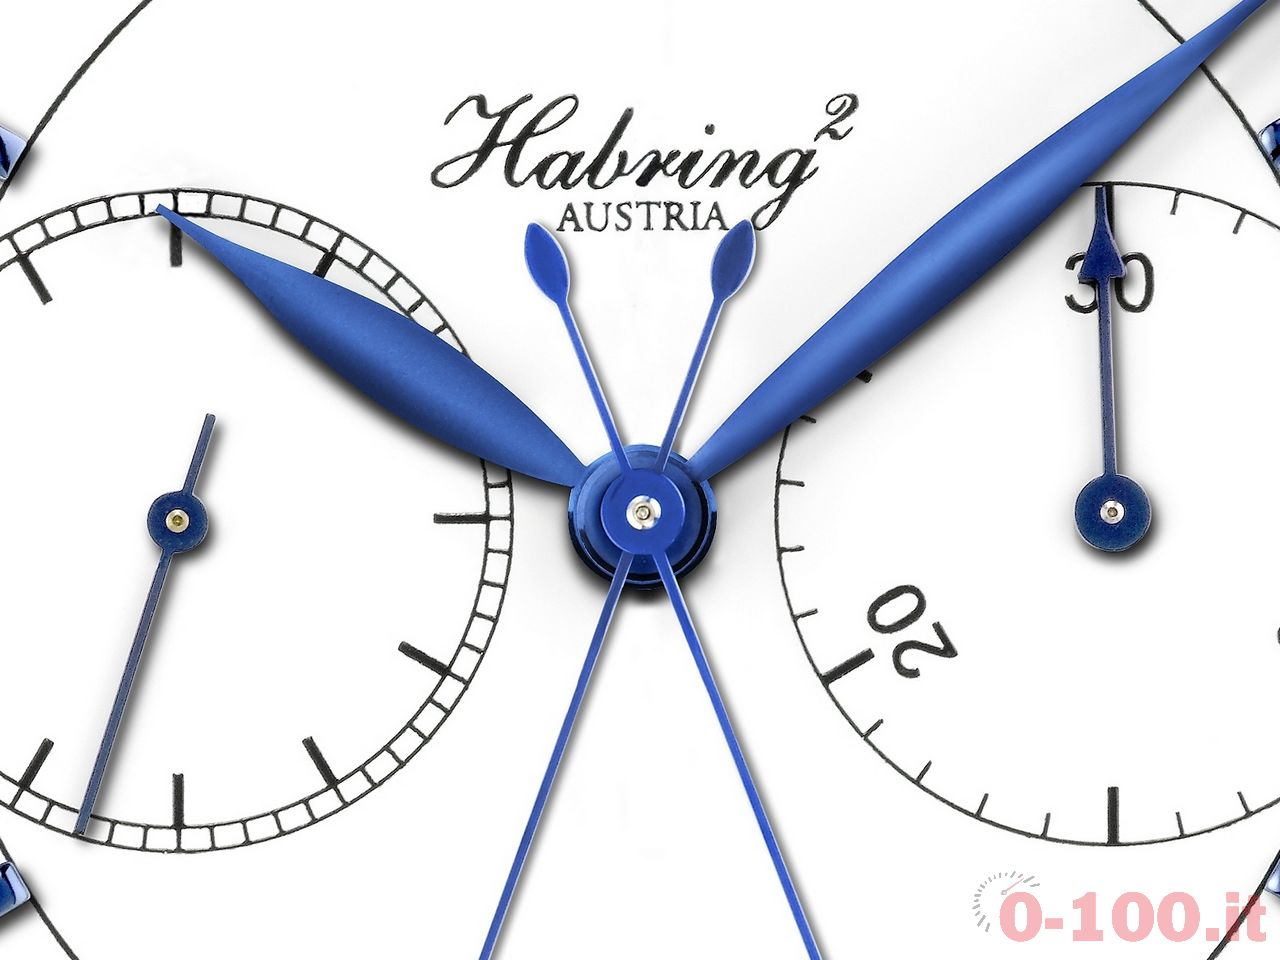 habring²-splitsecond-chronograph-limited-edition-horlogerie-suisse-com_0-1007